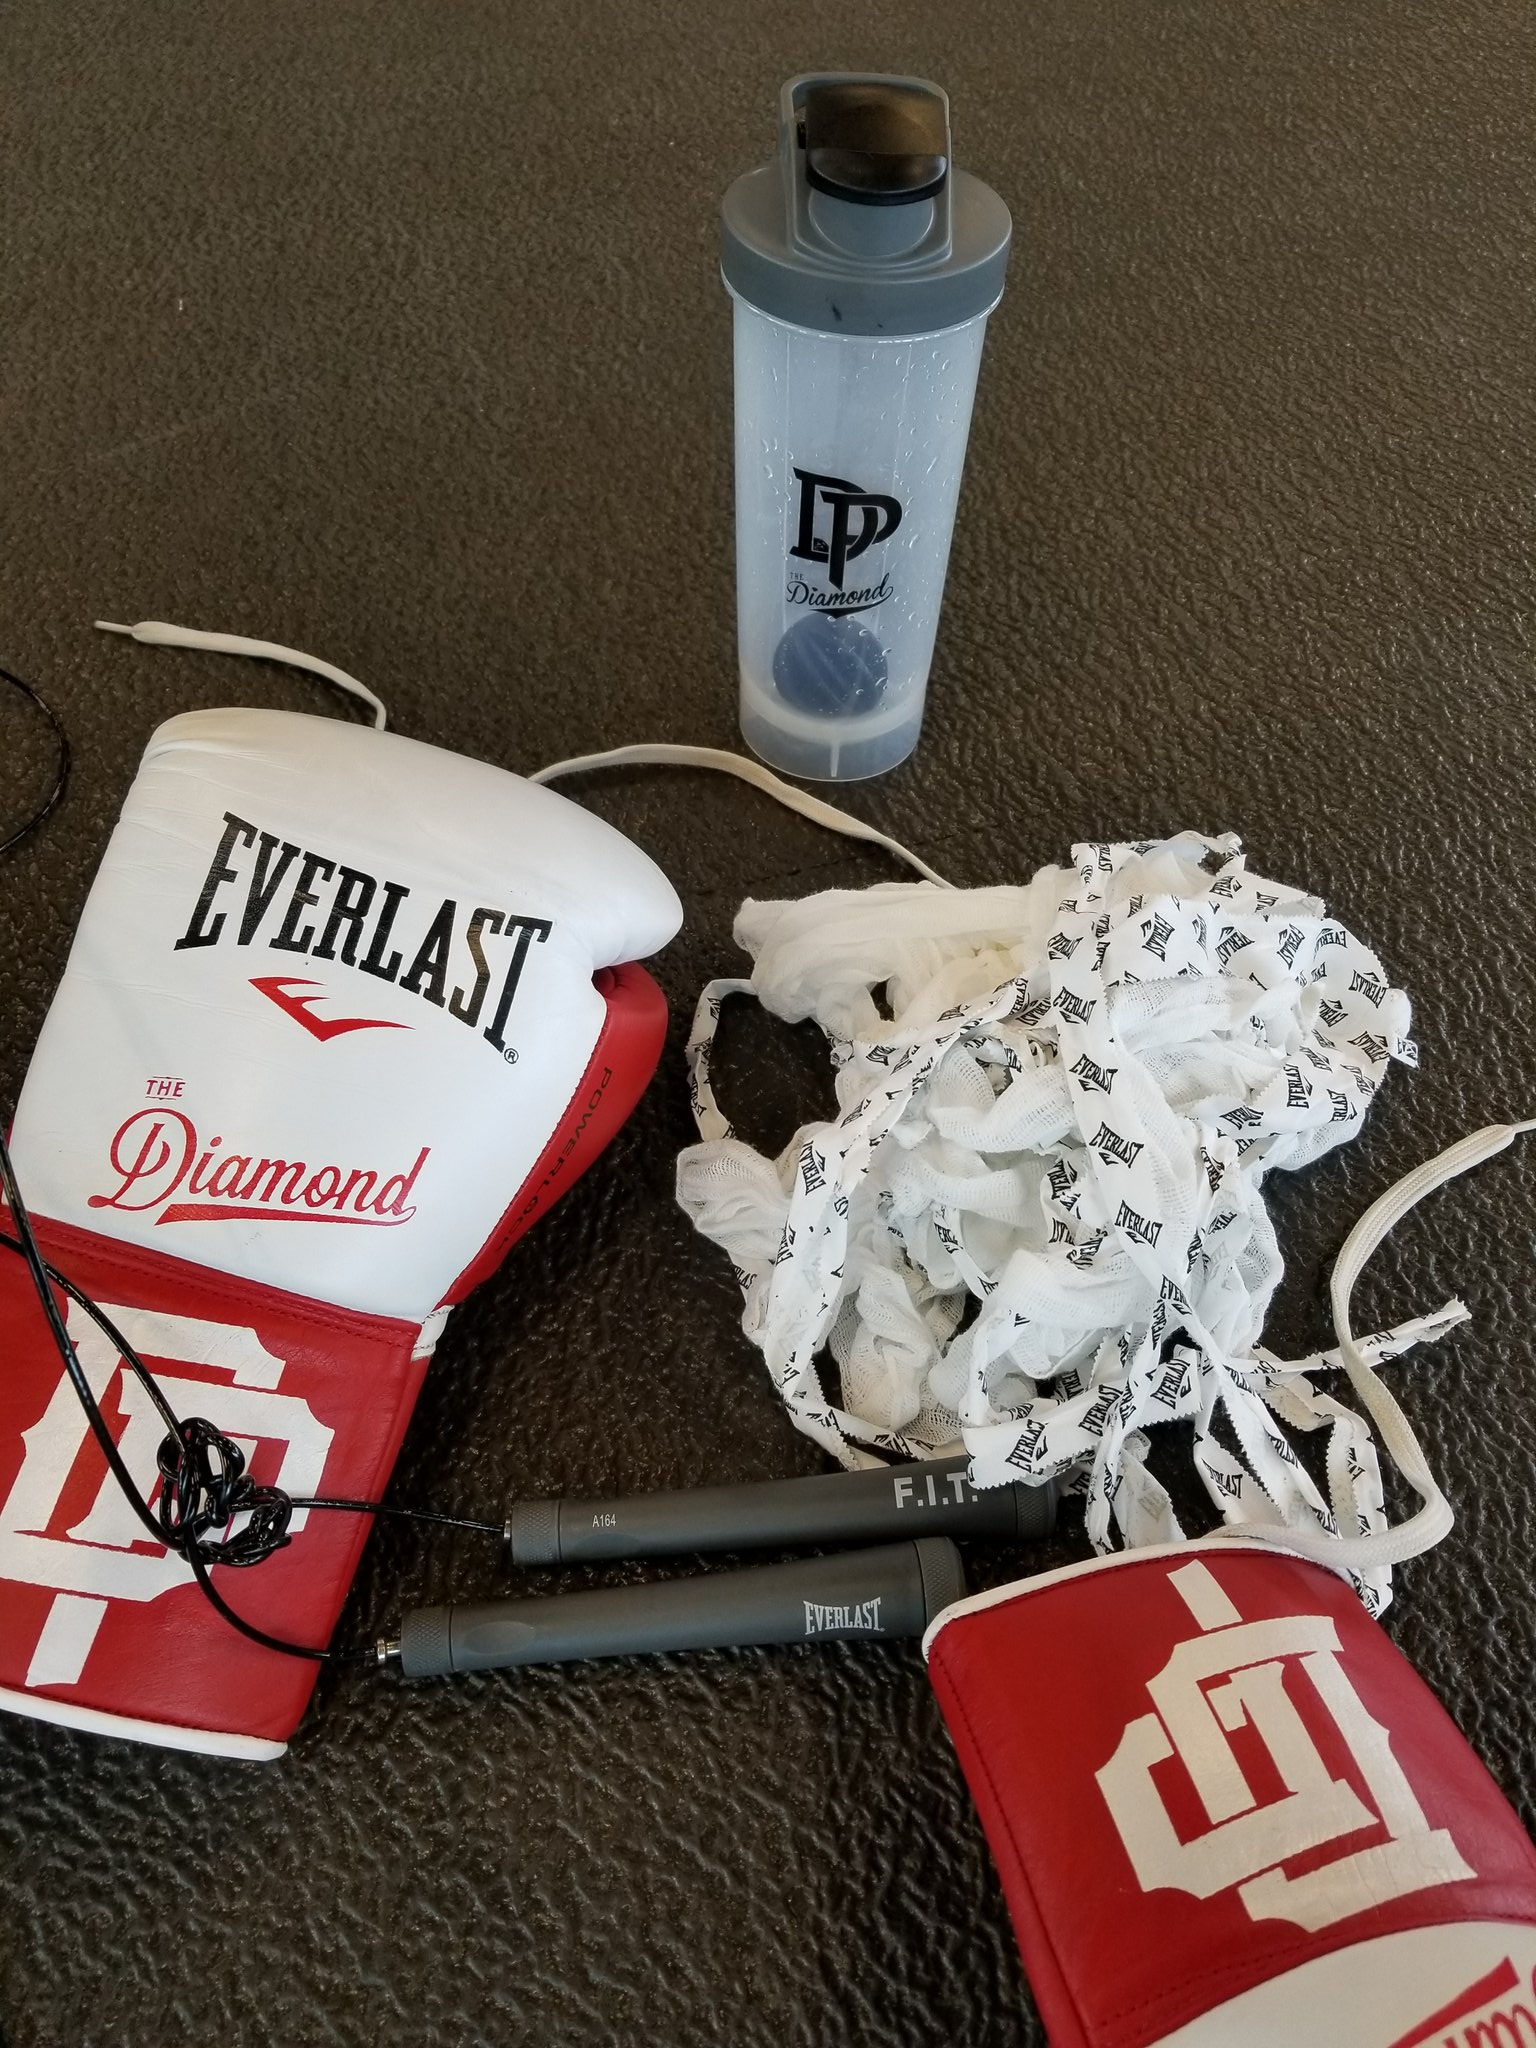 #teameverlast chaaaaaamp https://t.co/KDWJBTTl9I